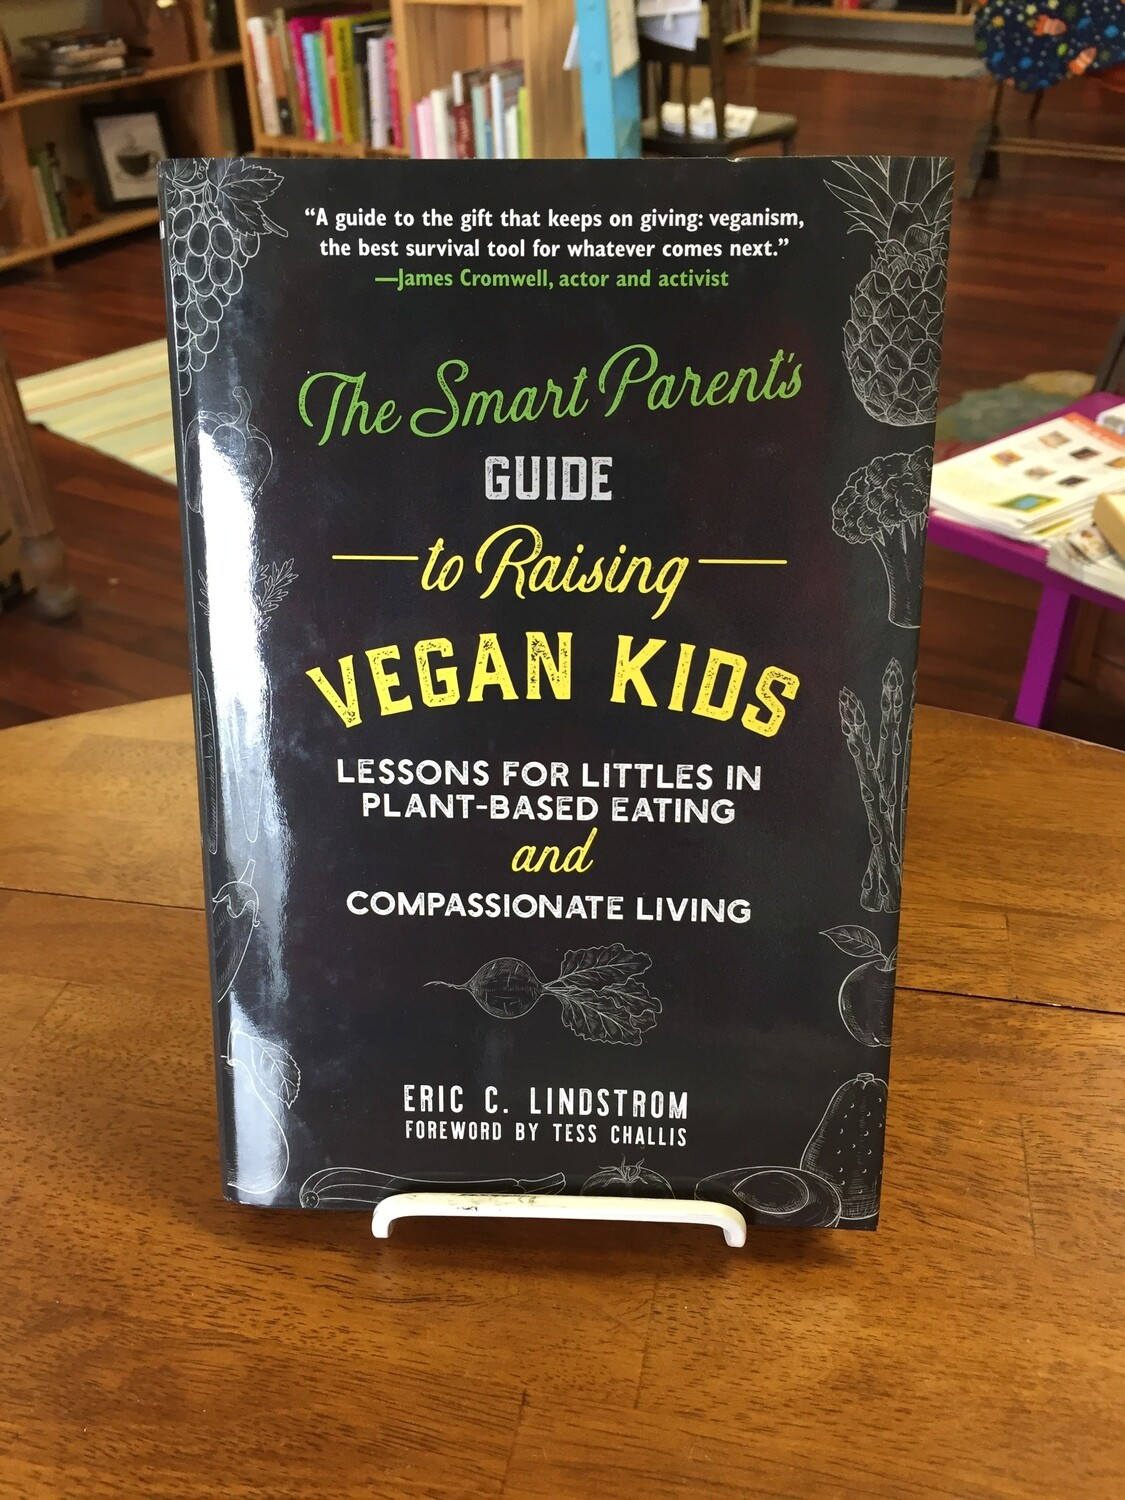 The Smart Parent's Guide to Raising Vegan Kids